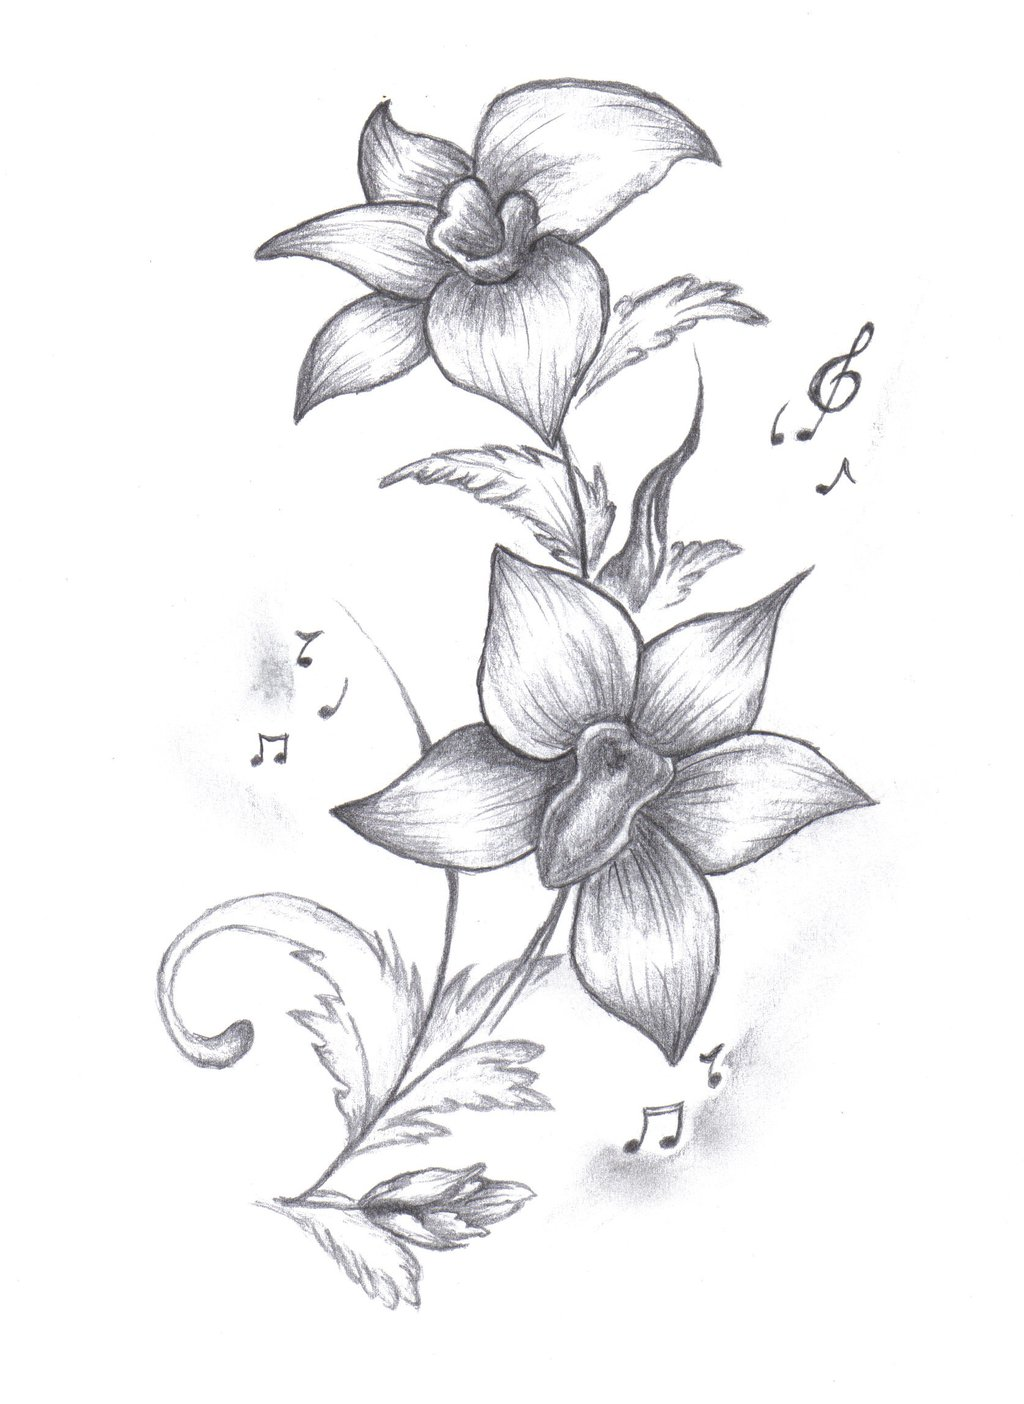 Drawn orchid Gousicteco: Easy Images Drawing Orchid